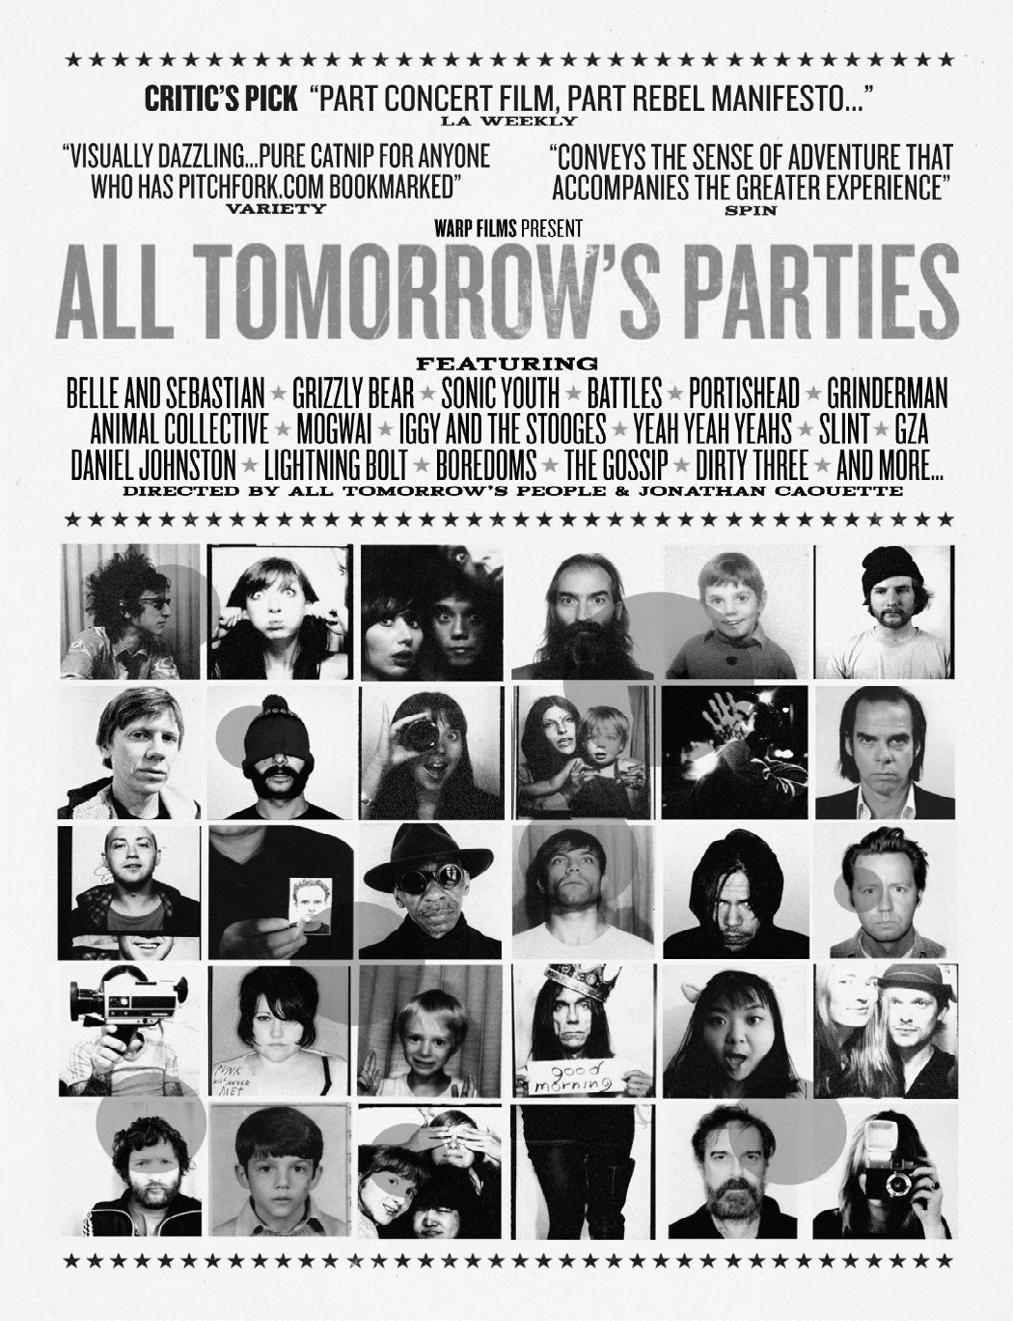 Michael Brendan Baker Notes on the Rockumentary Renaissance 2009 saw the release of All Tomorrow s Parties (Jonathan Caouette), a feature-length film documenting the history of the acclaimed